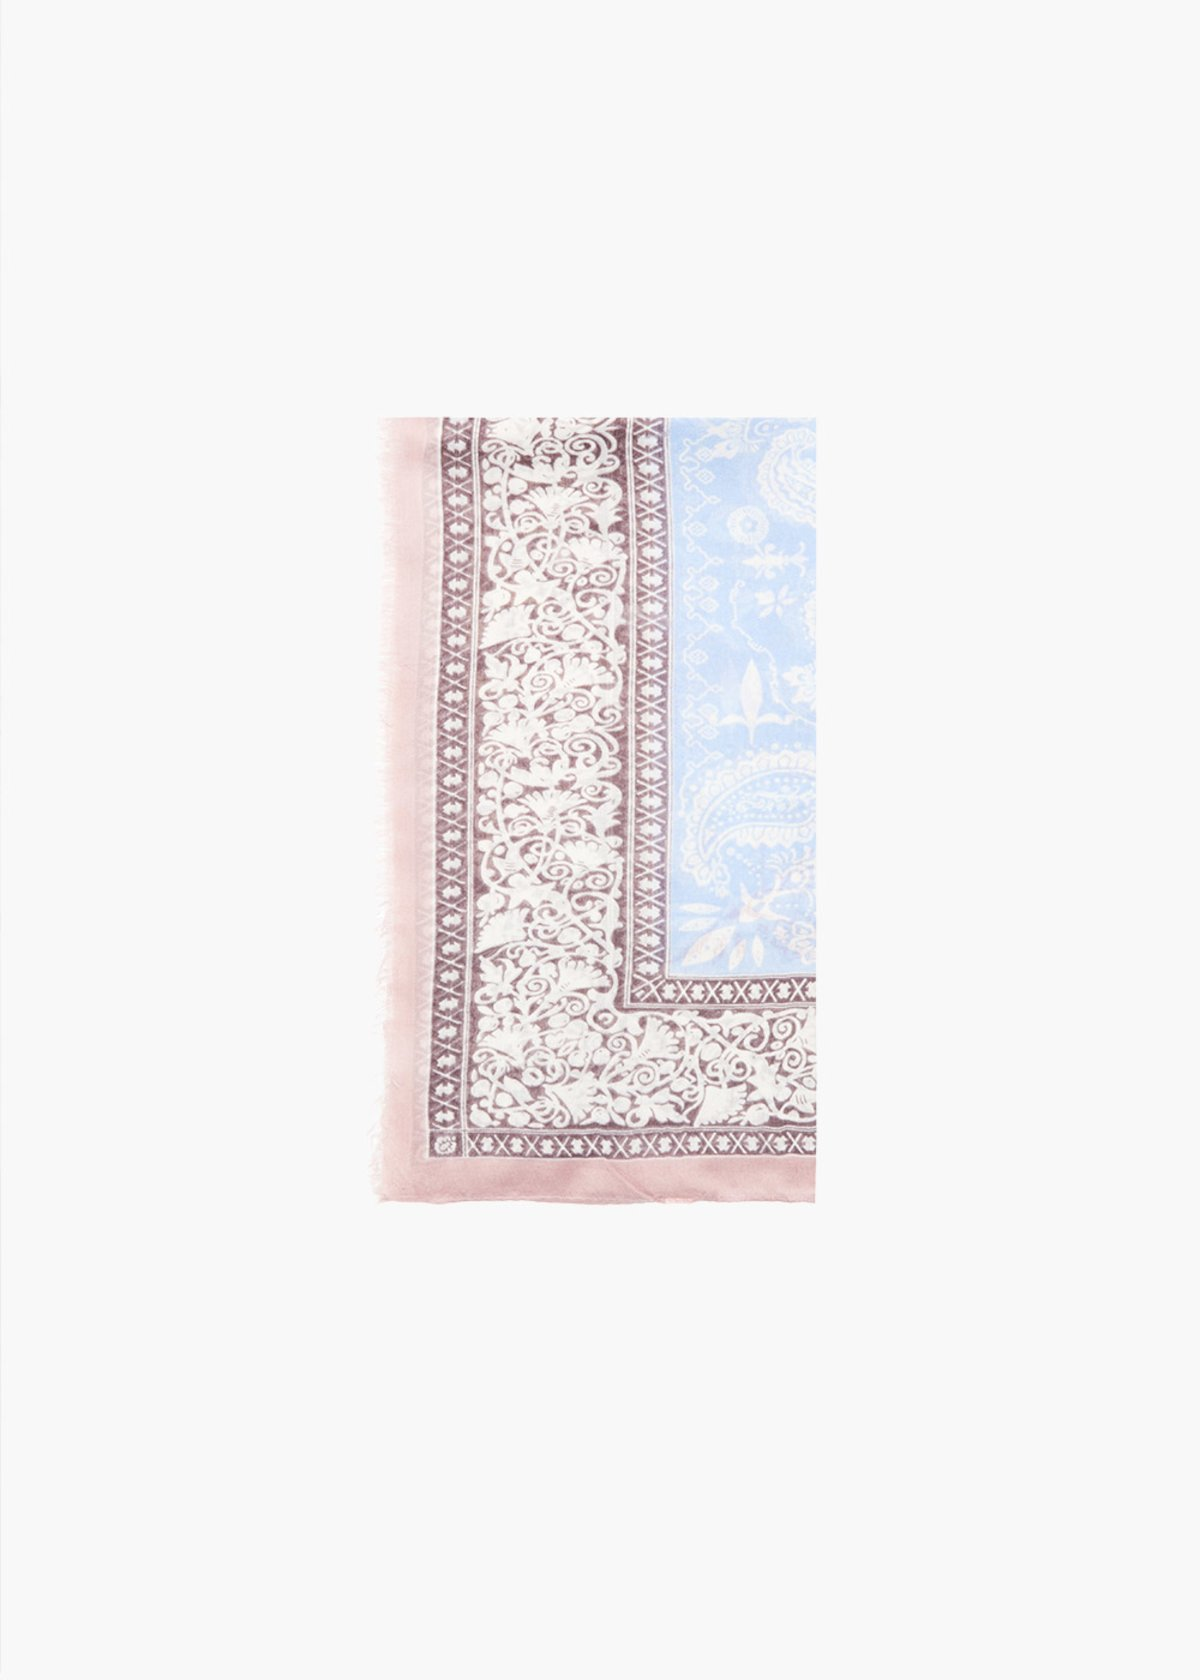 Sidny cashmere print scarf - Calcite Fantasia - Woman - Category image